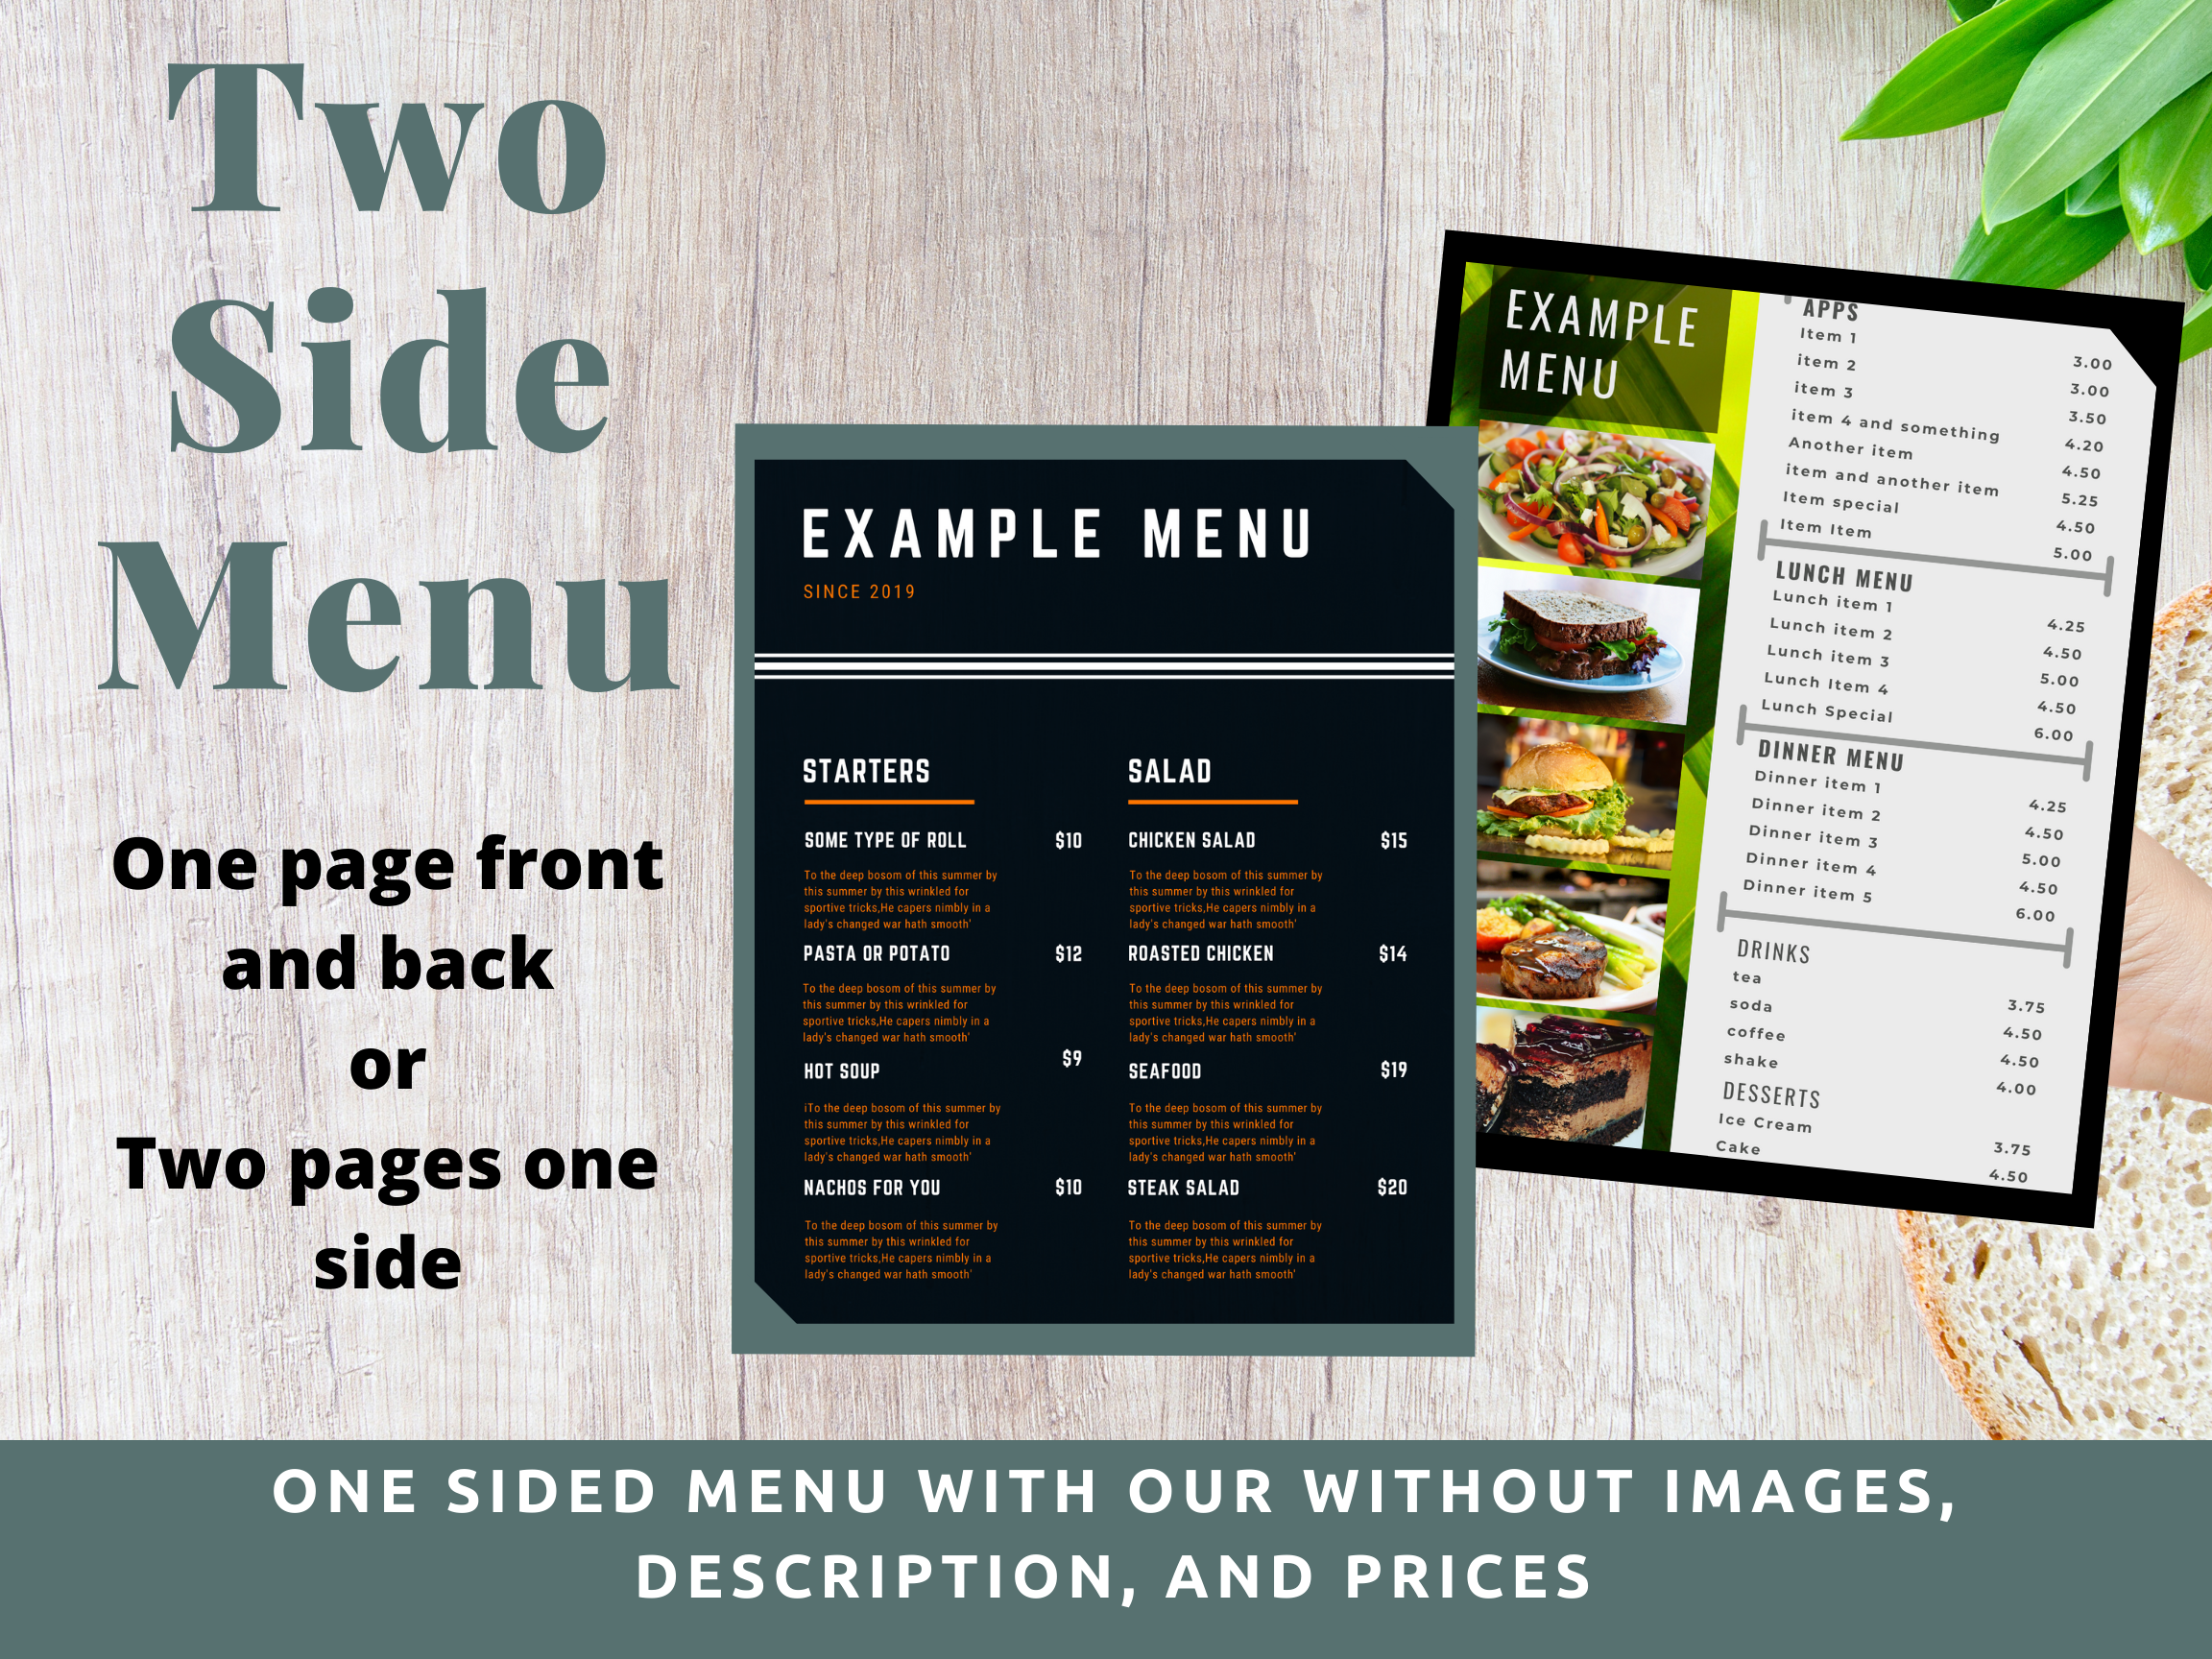 $75 Menu Two Sides (front/back or two pages one side)